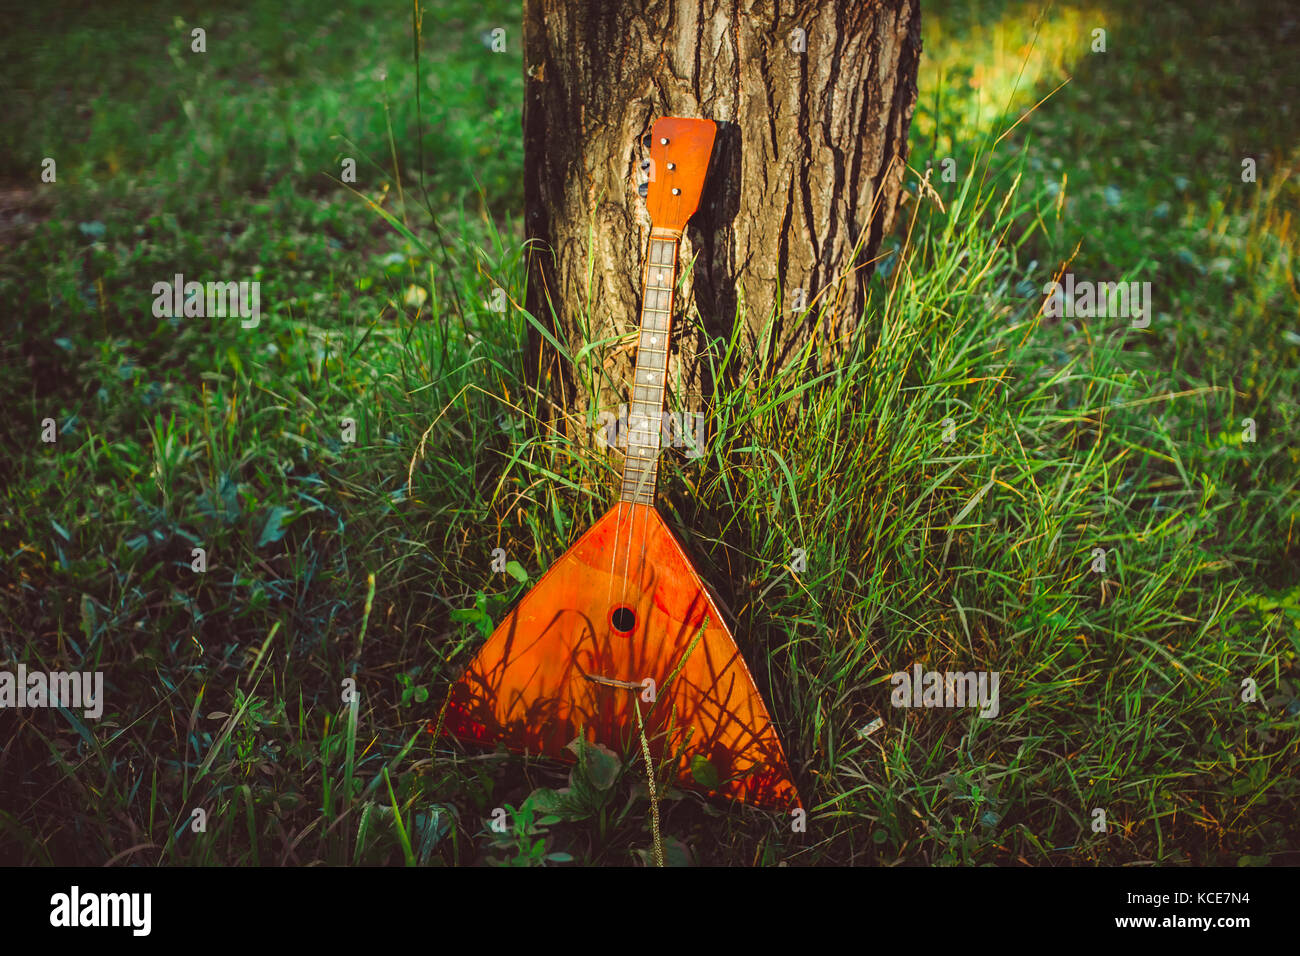 balalaika is in the forest near the tree - Stock Image